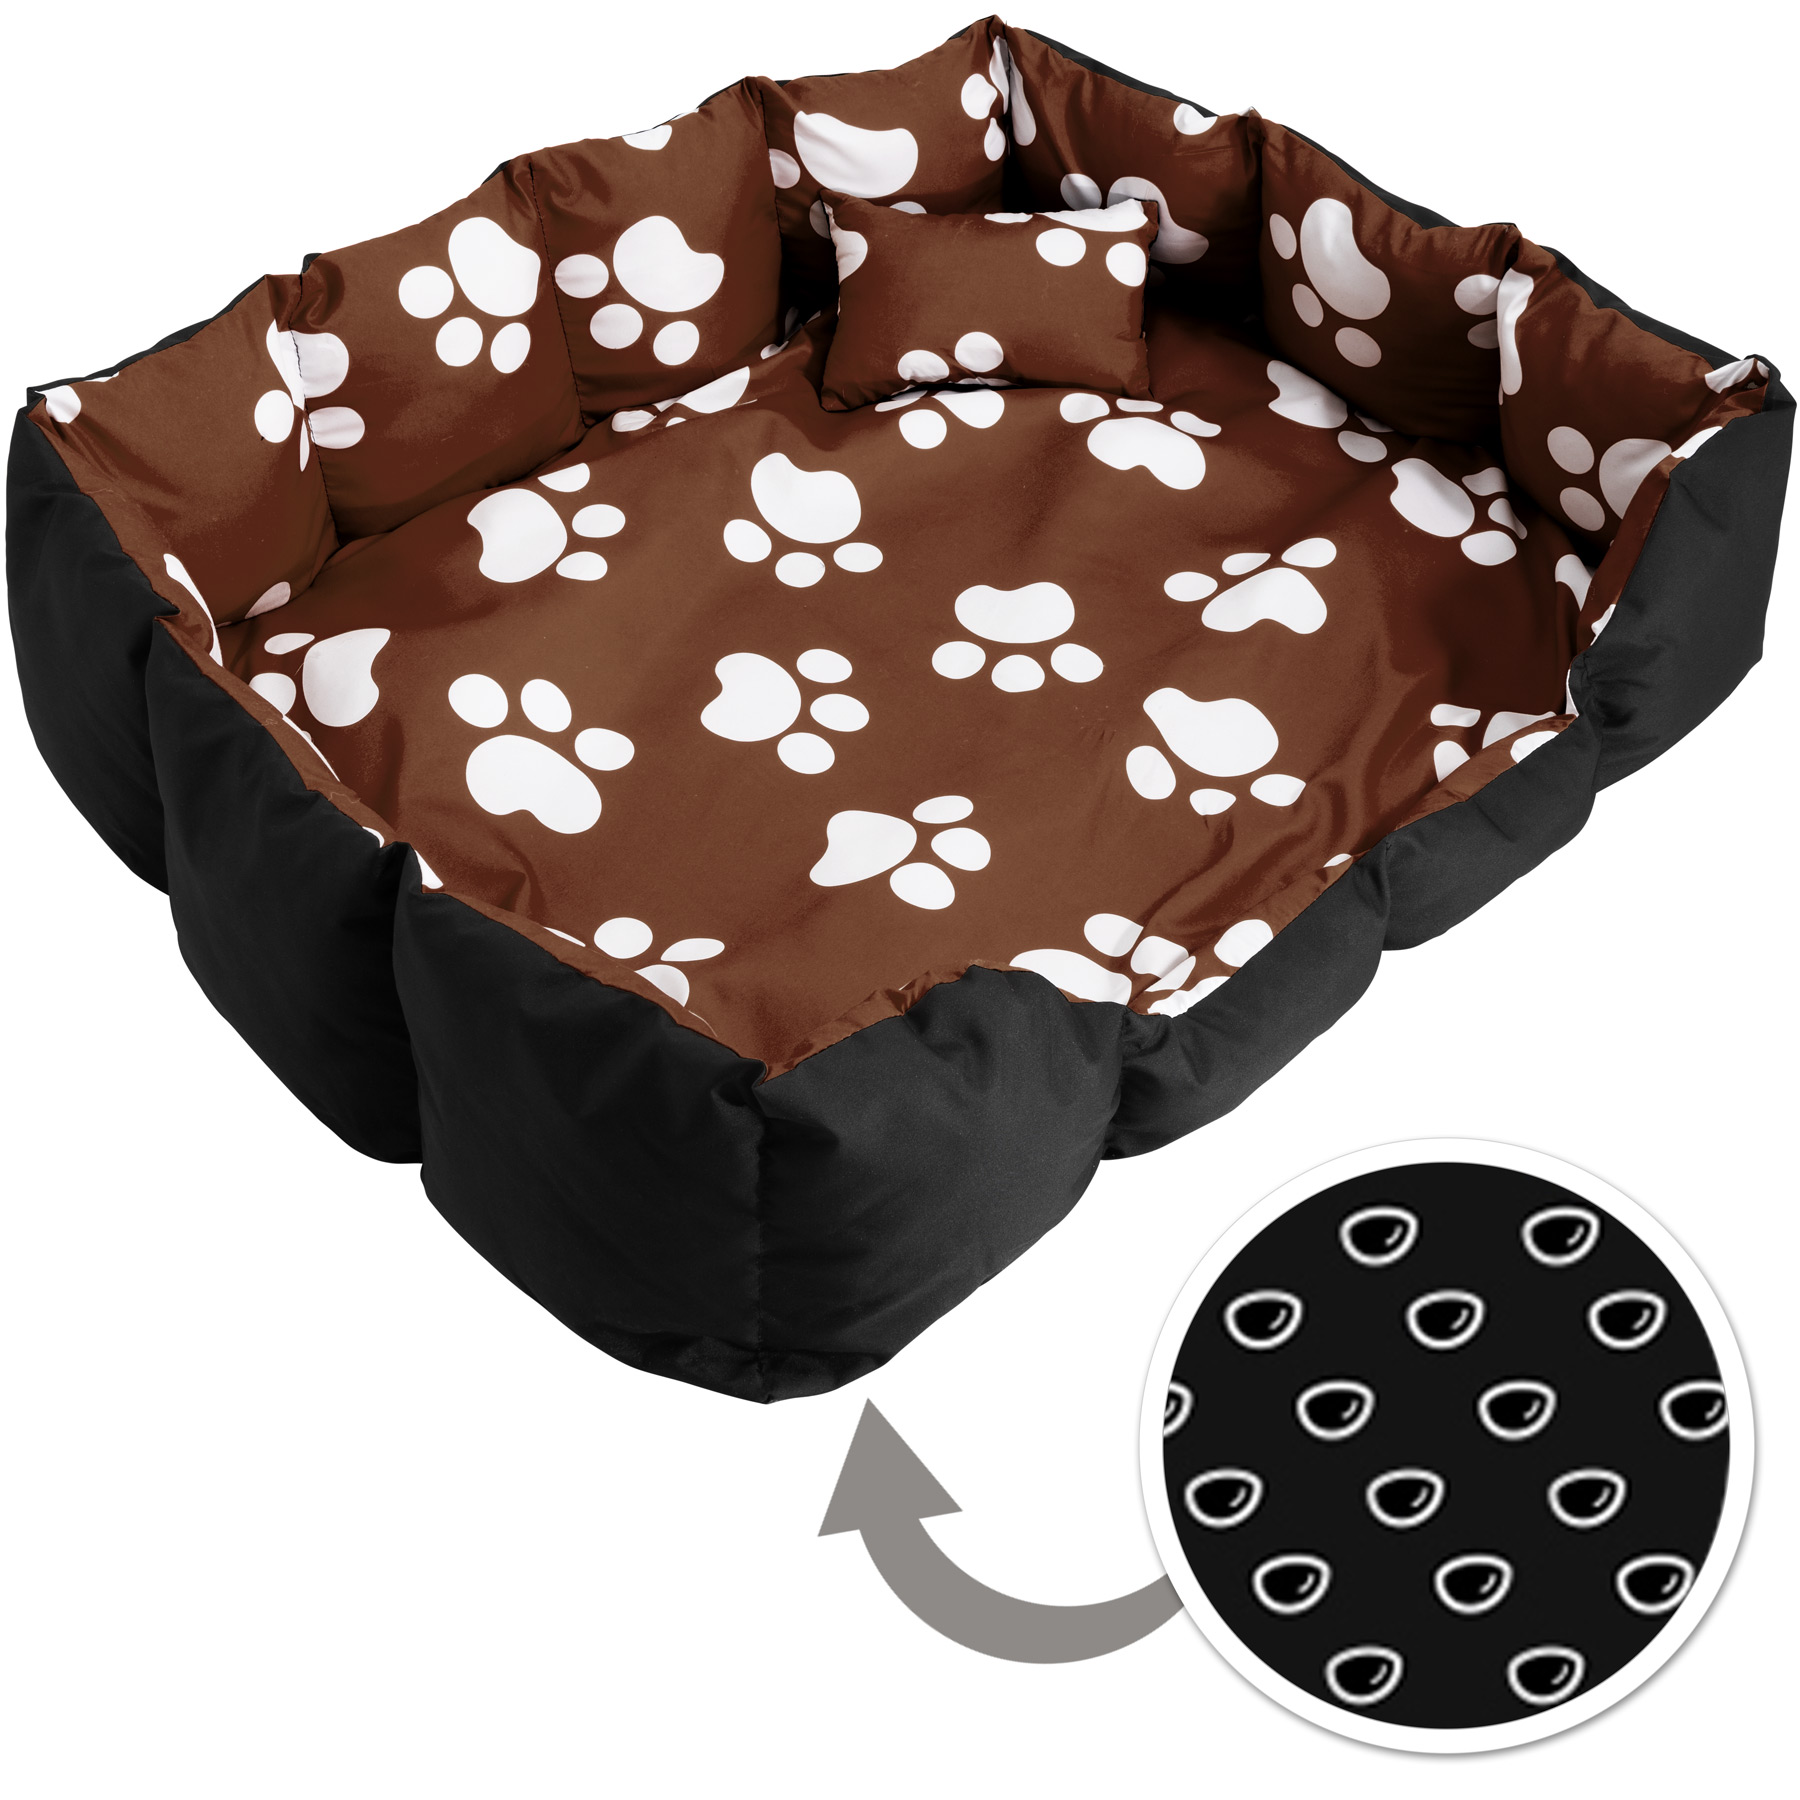 xxl dog beds. Black Bedroom Furniture Sets. Home Design Ideas